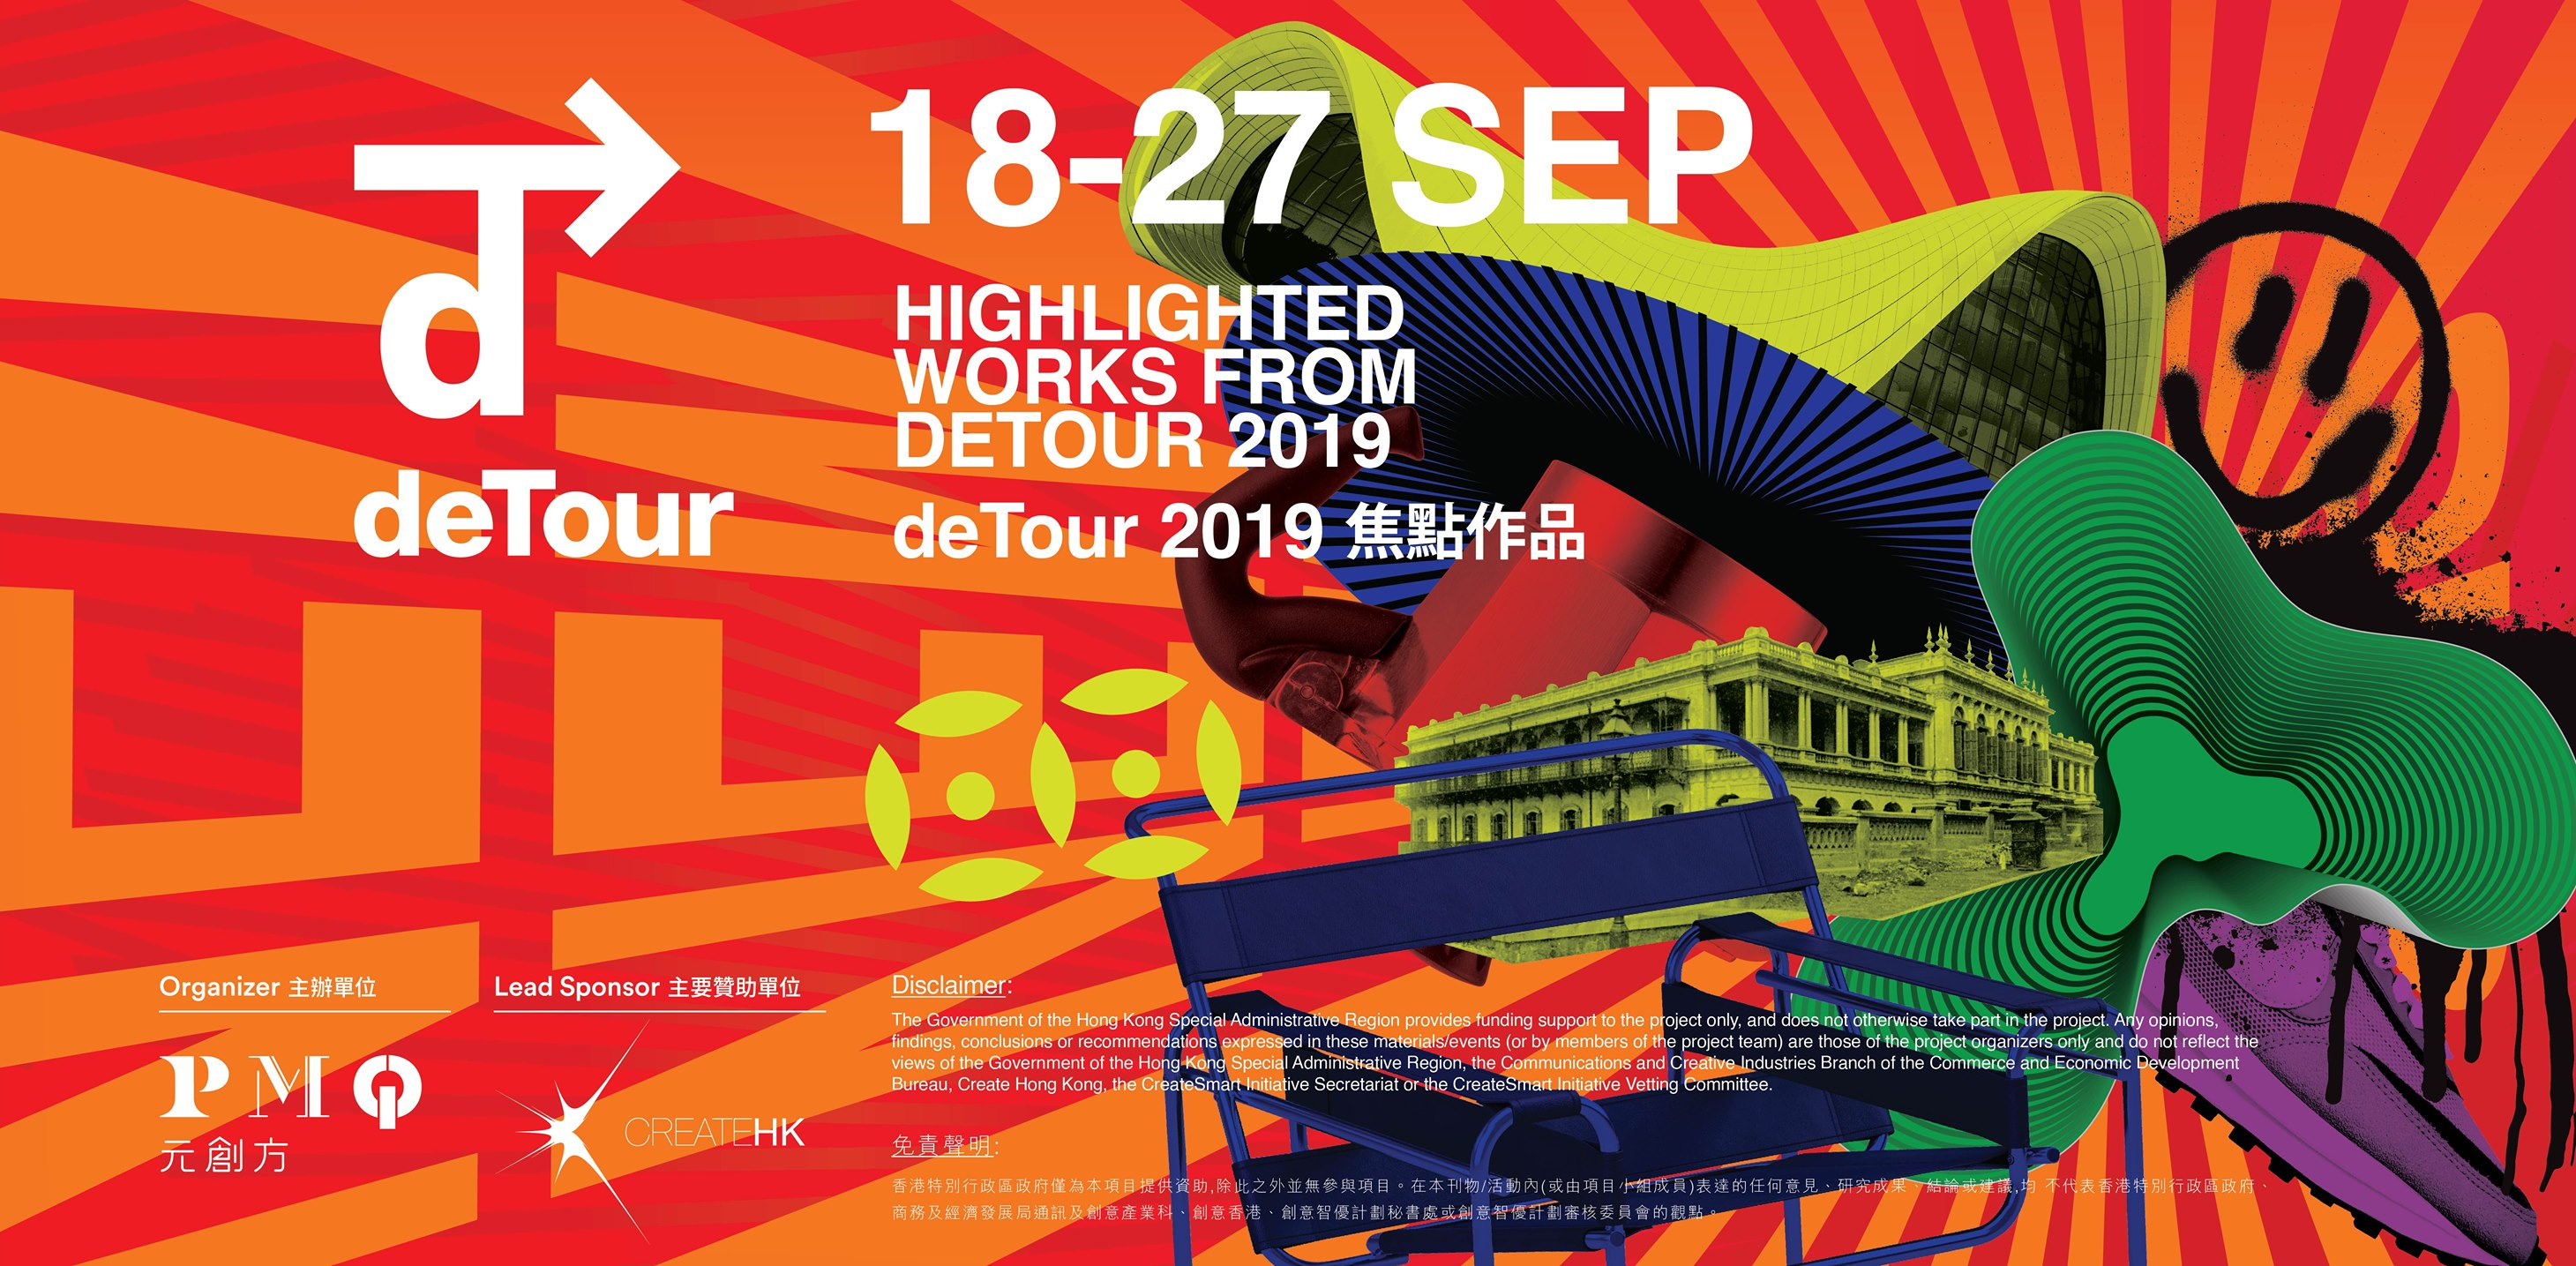 deTour 2019 焦點作品 Highlighted Works from deTour 2019